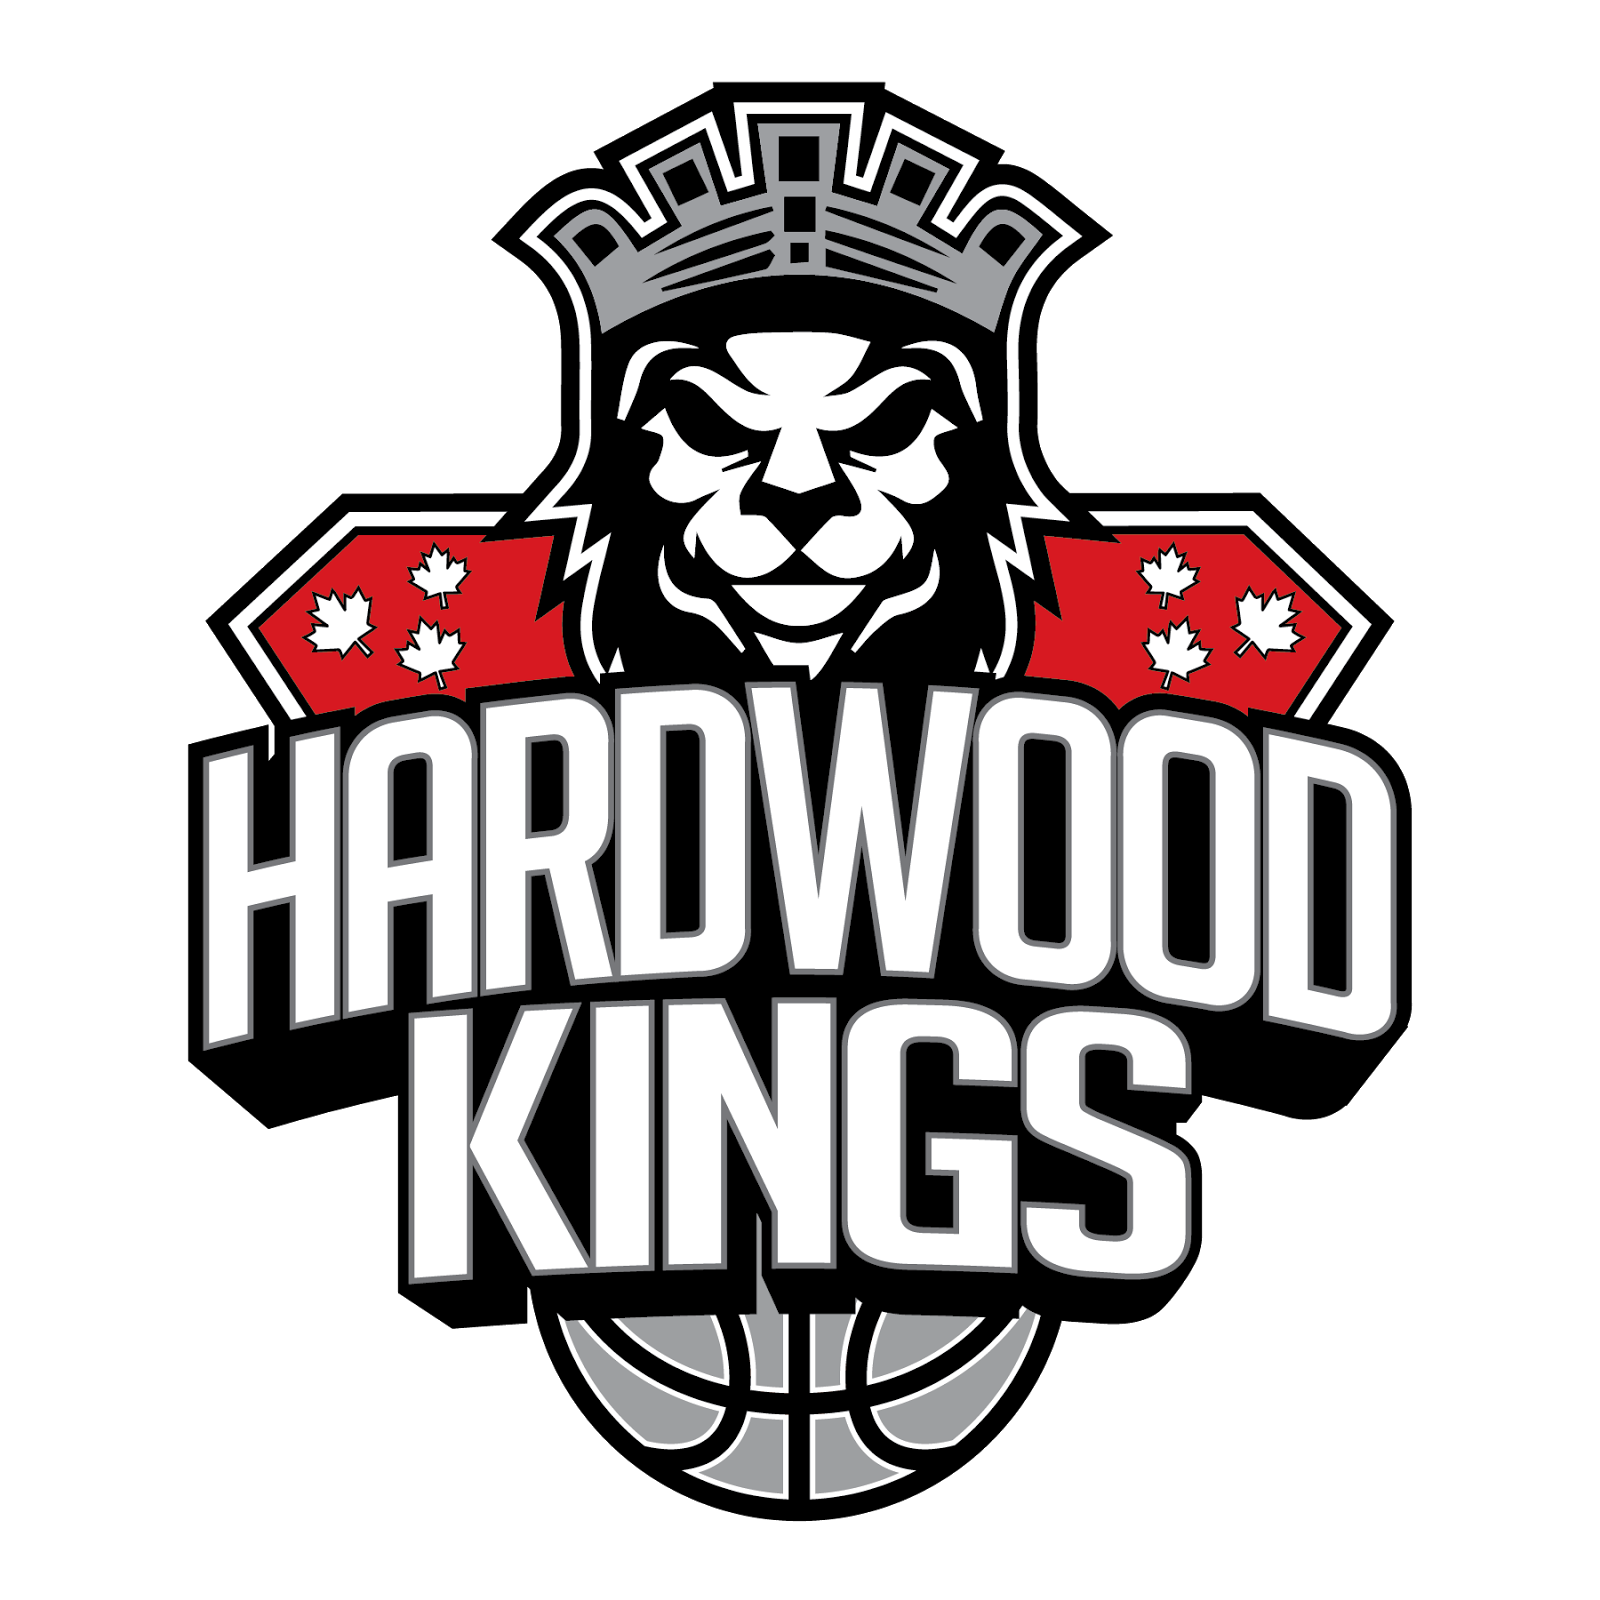 BRAMPTON HARDWOOD KINGS AAU